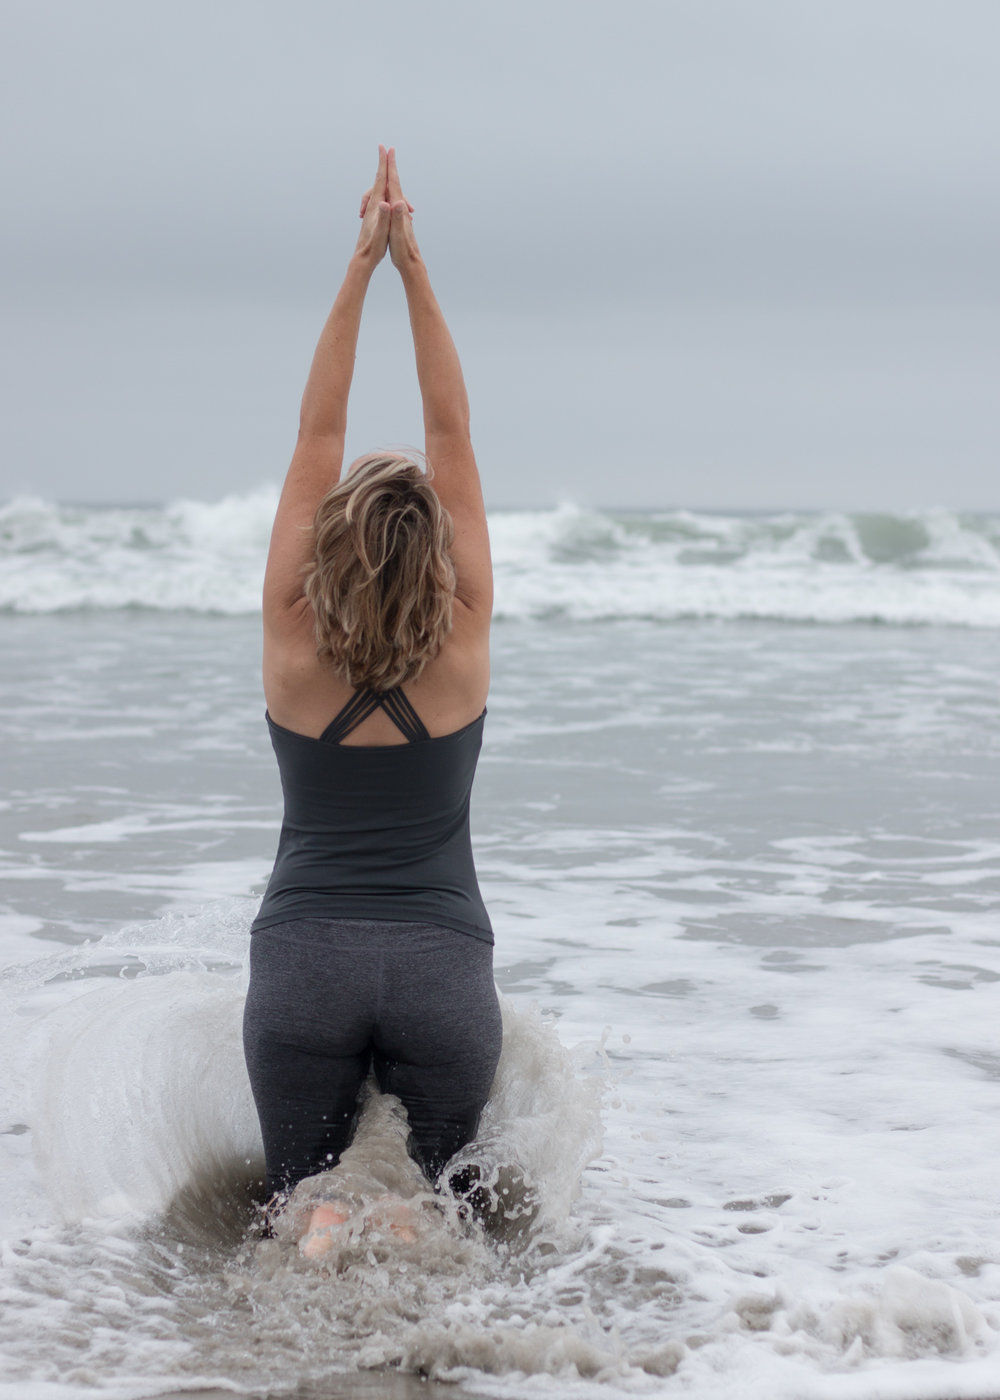 Yoga in Ocean Waves